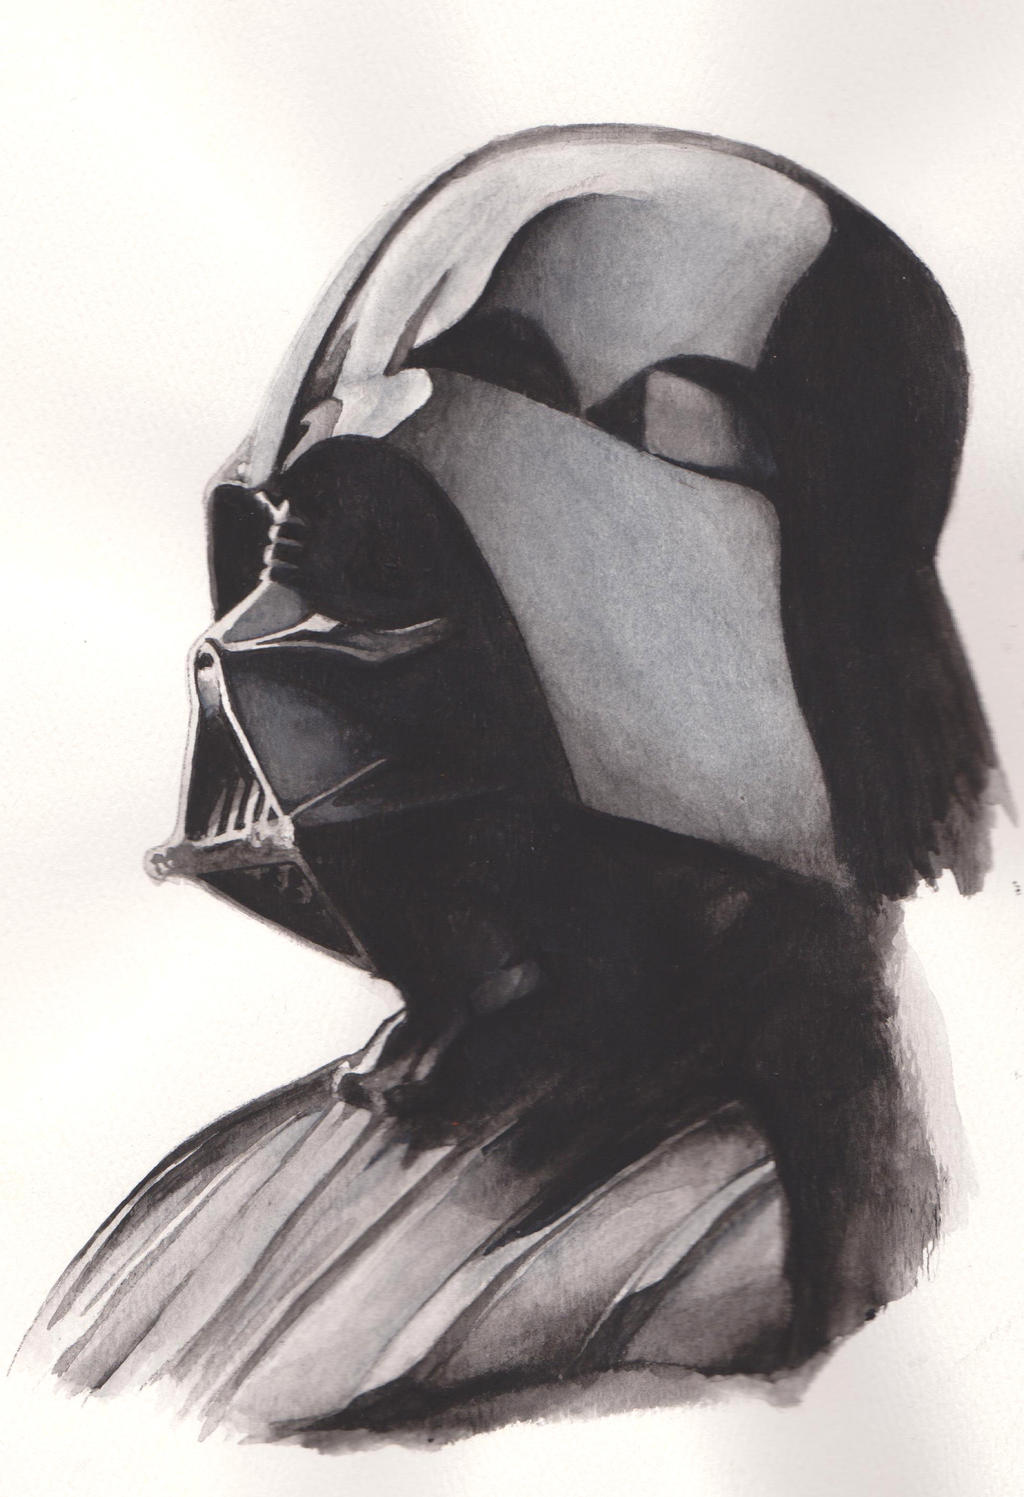 Darth Vader by WEAPONIX on DeviantArt